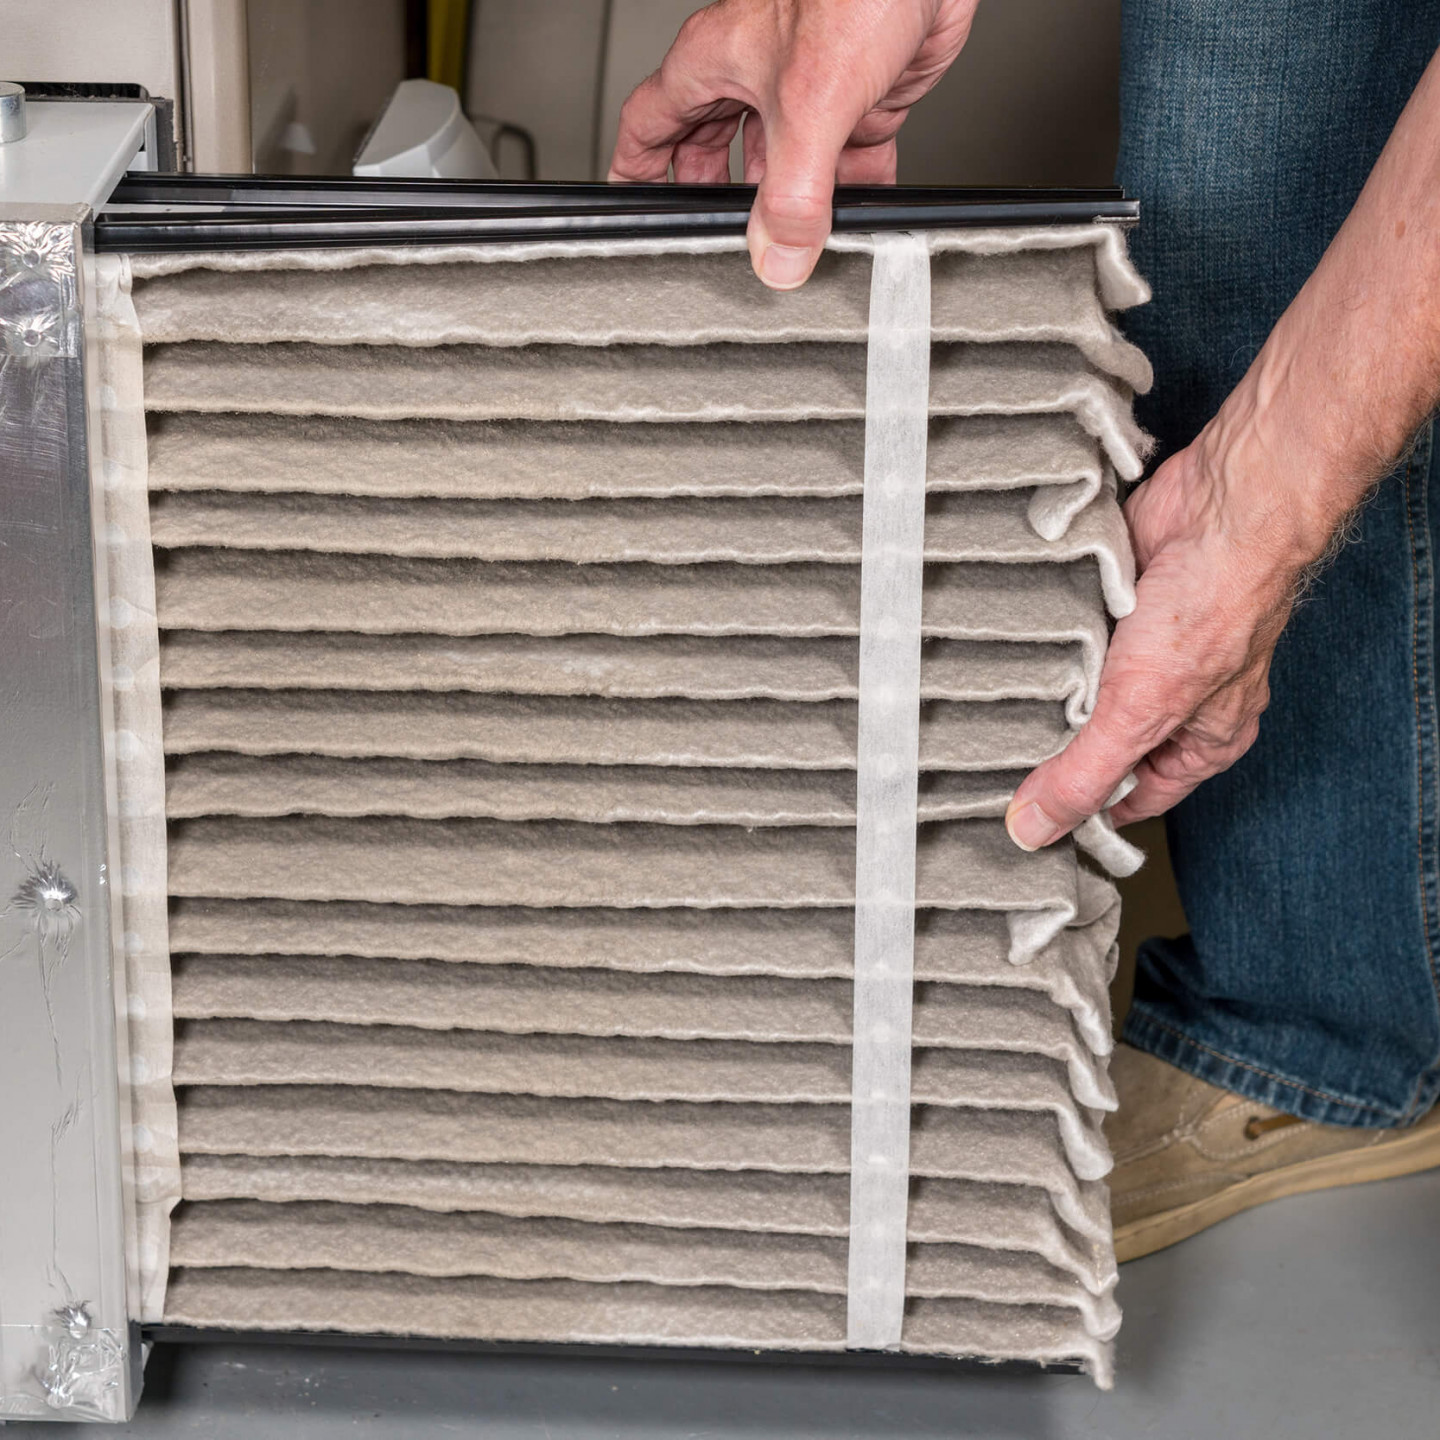 How Often Should I Change My Filter?